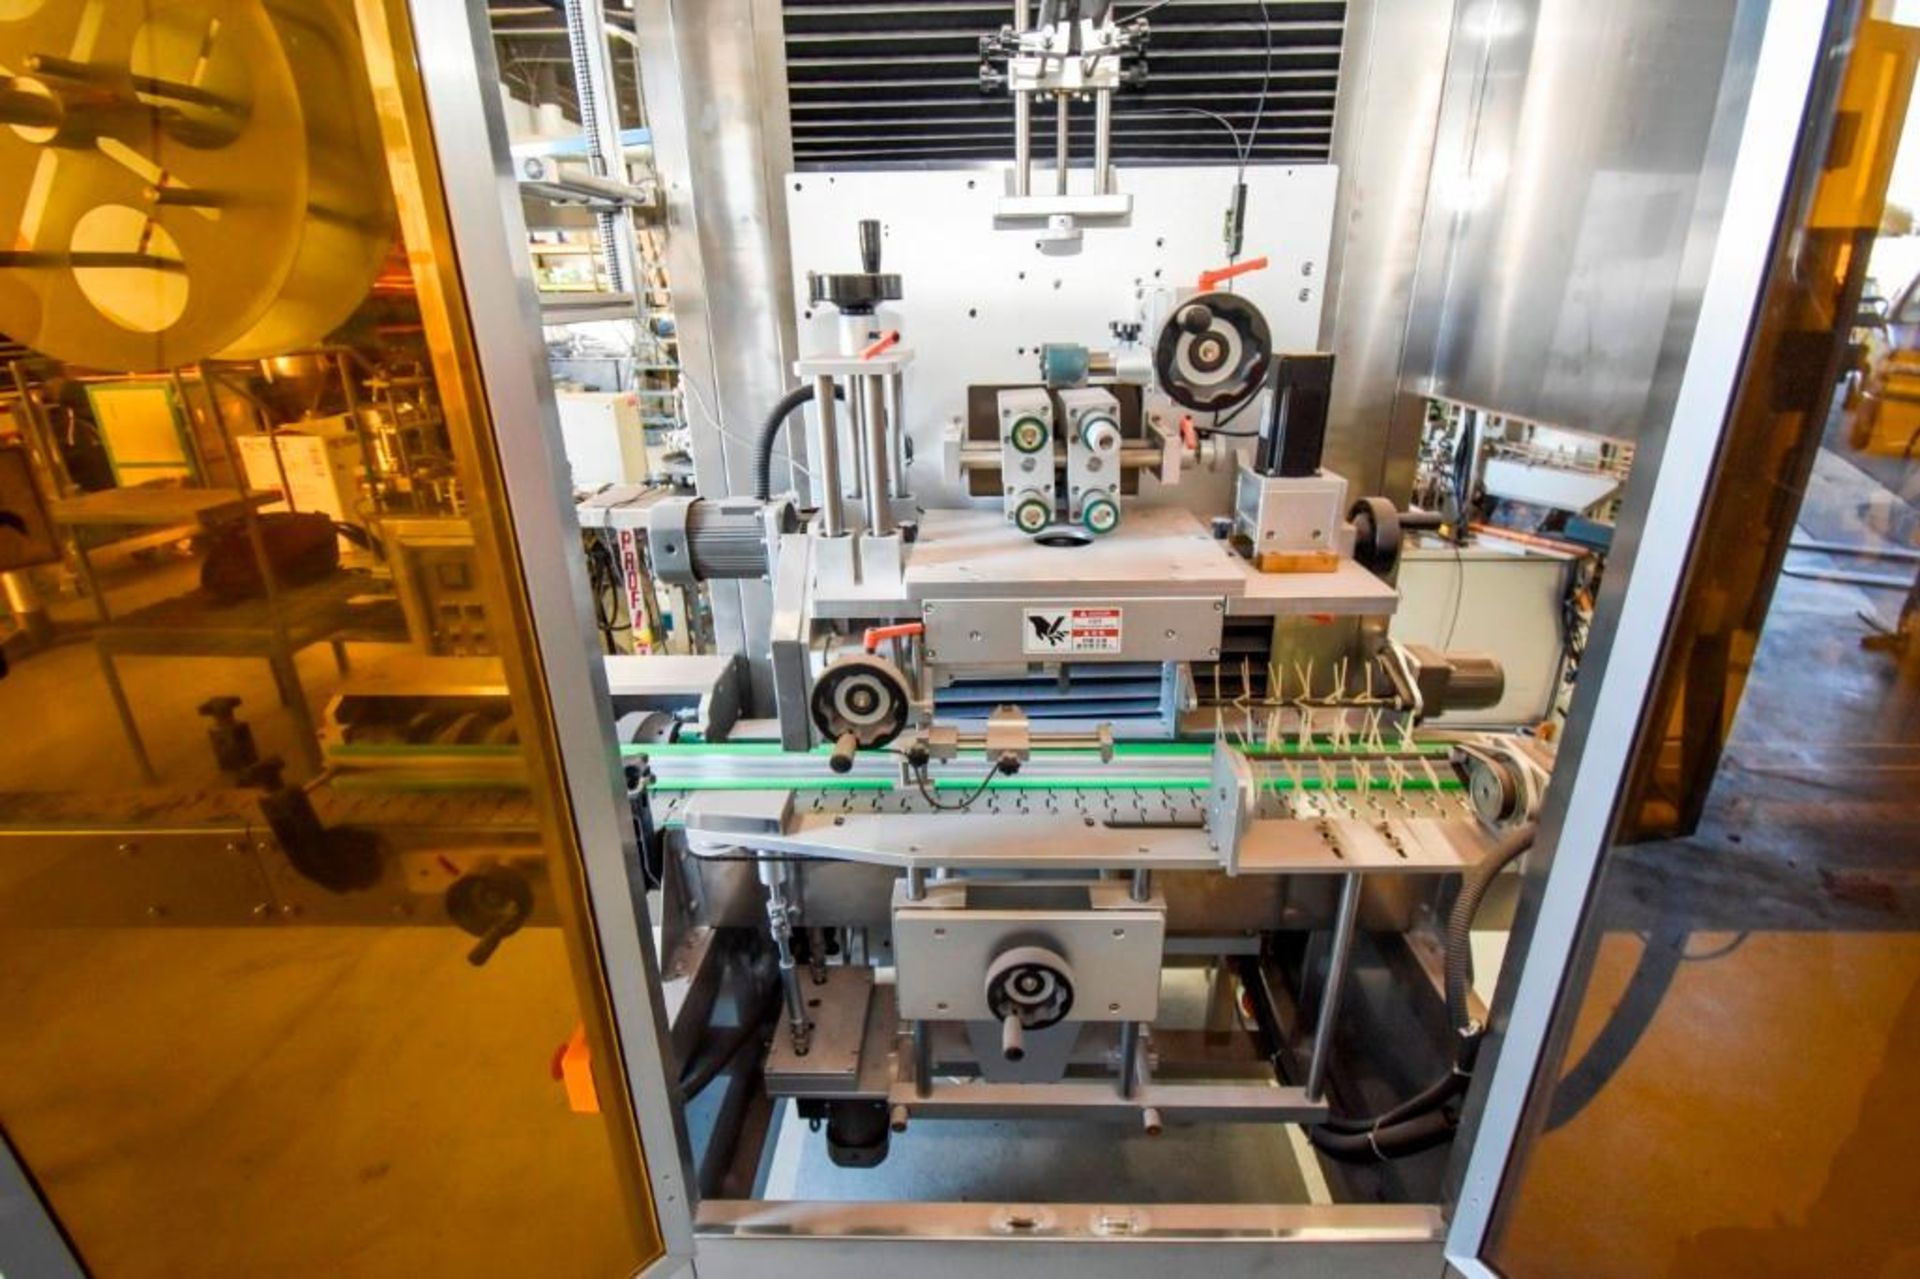 Fully Automatic Sleeve and Shrink Labeling Machine - Image 15 of 24